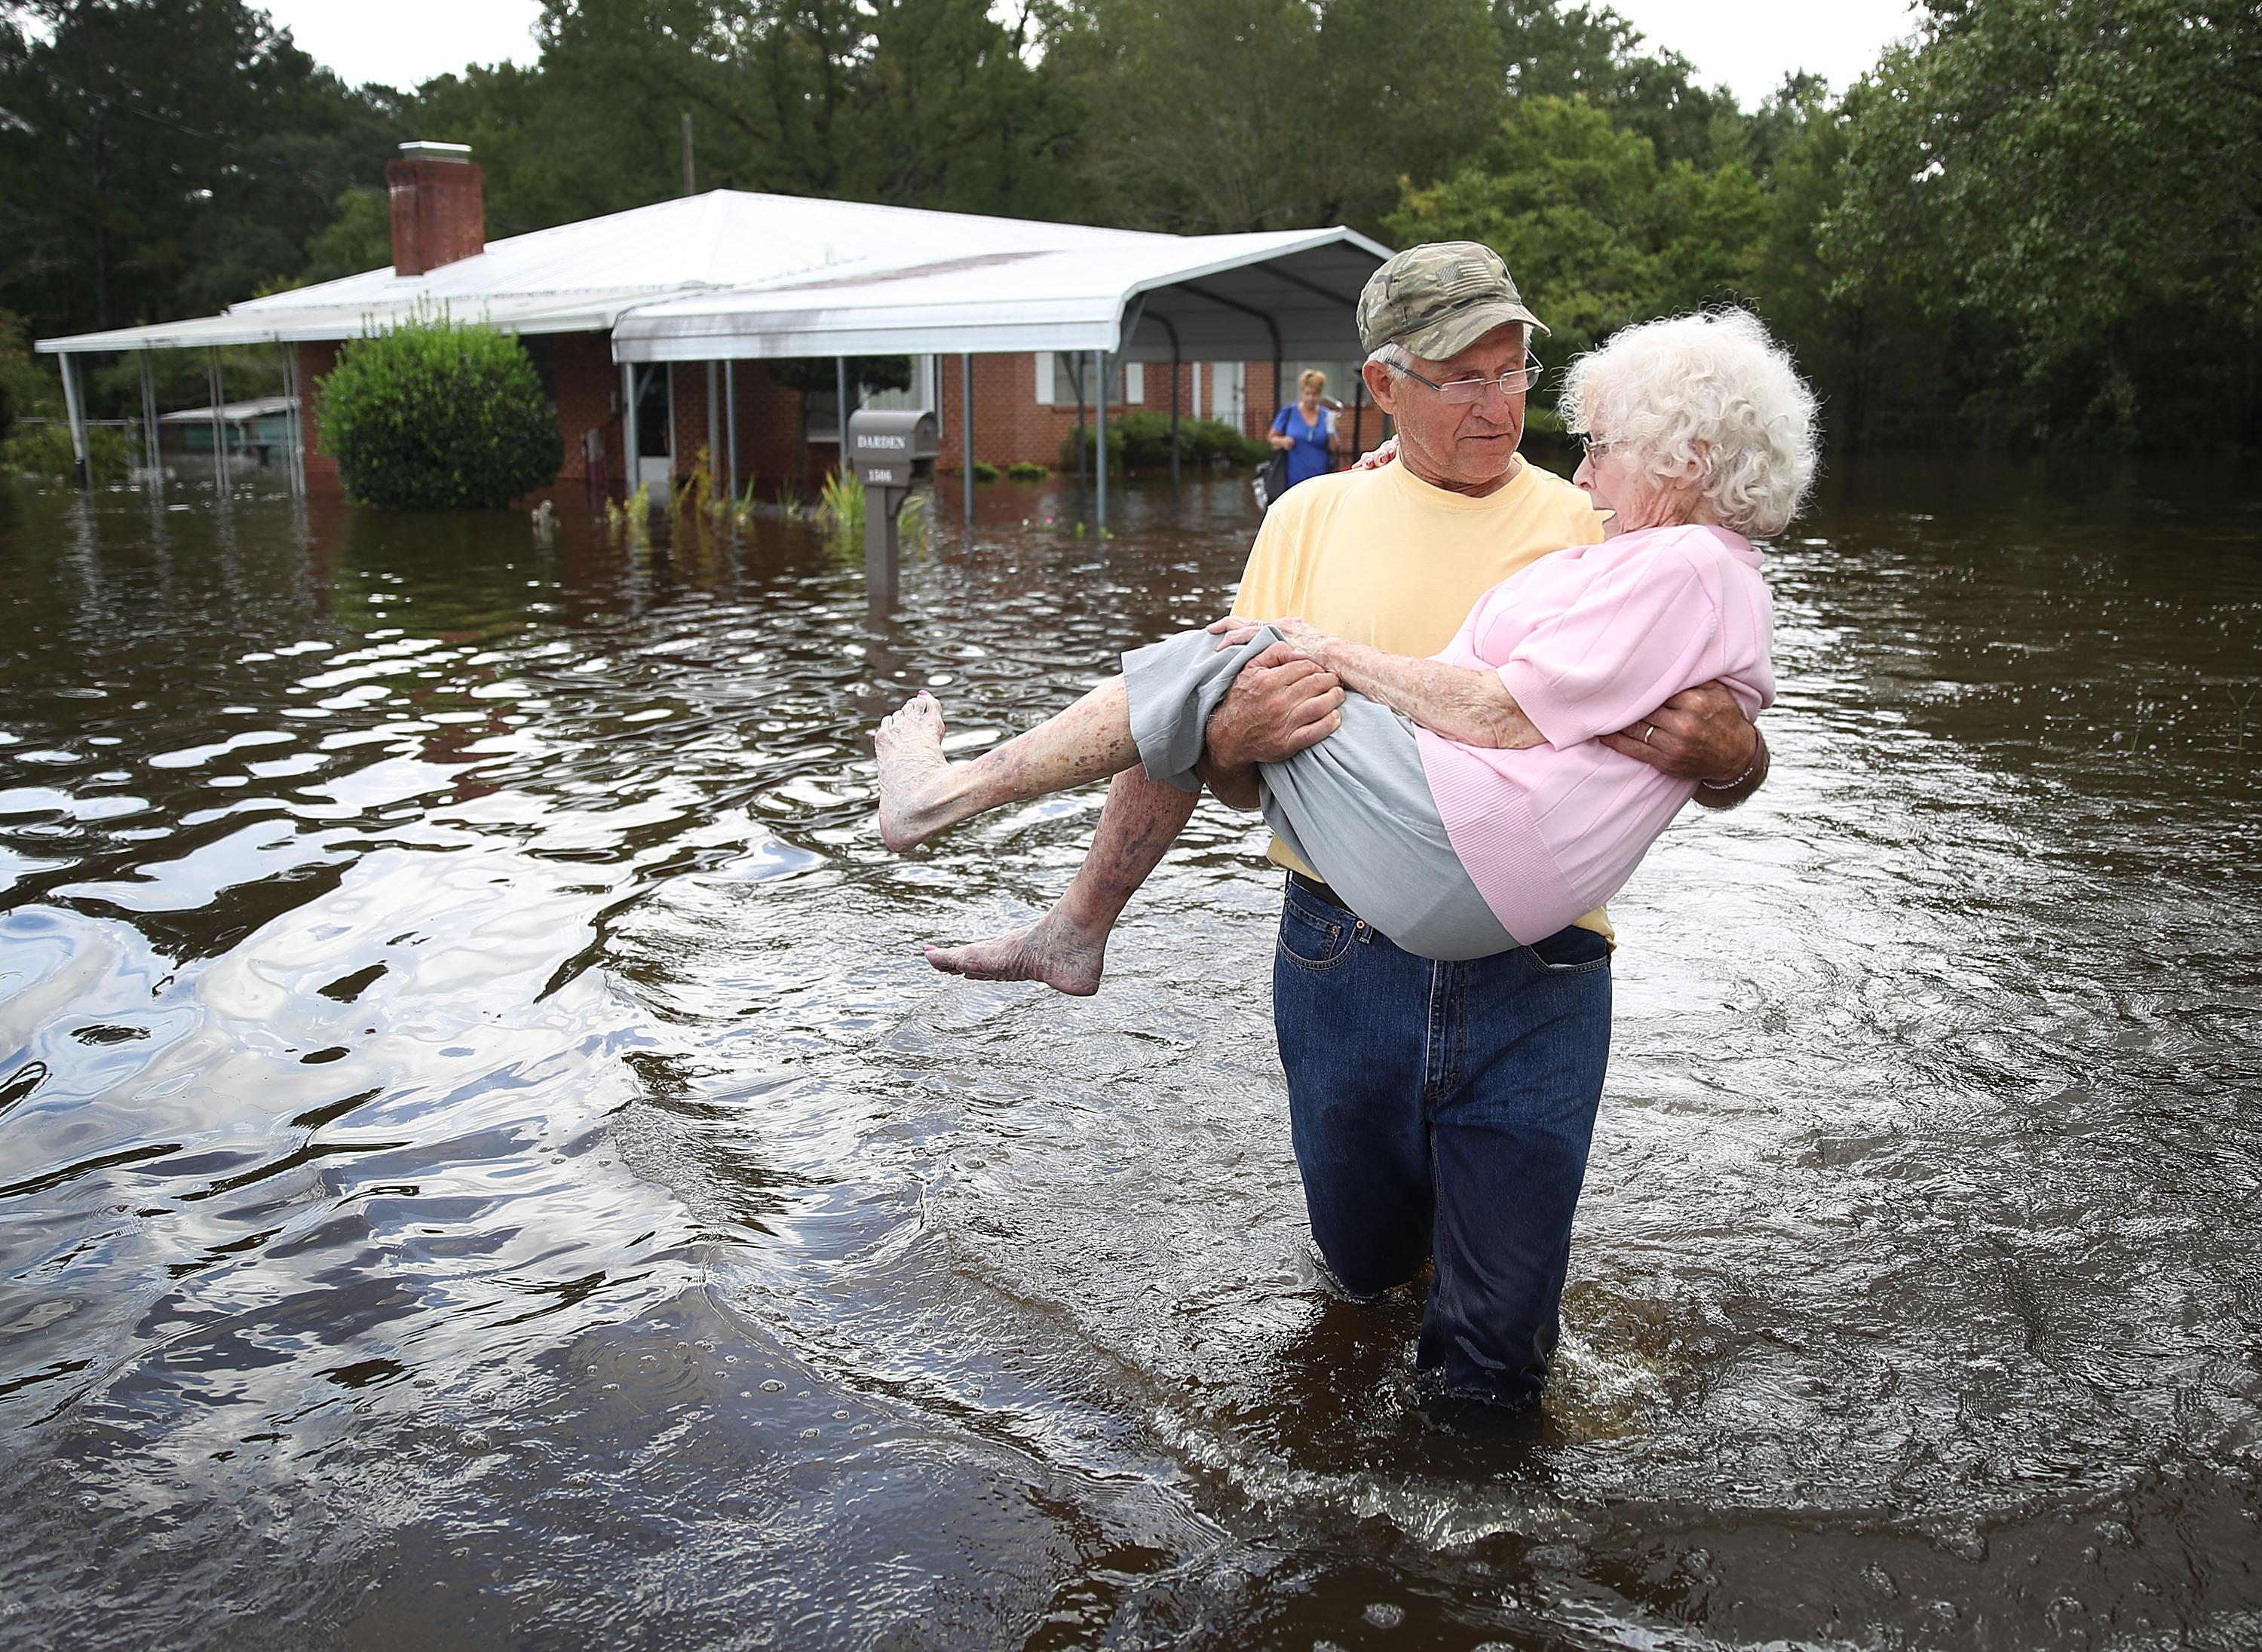 A man carries an older woman in knee-height water with a flooded house in the background.